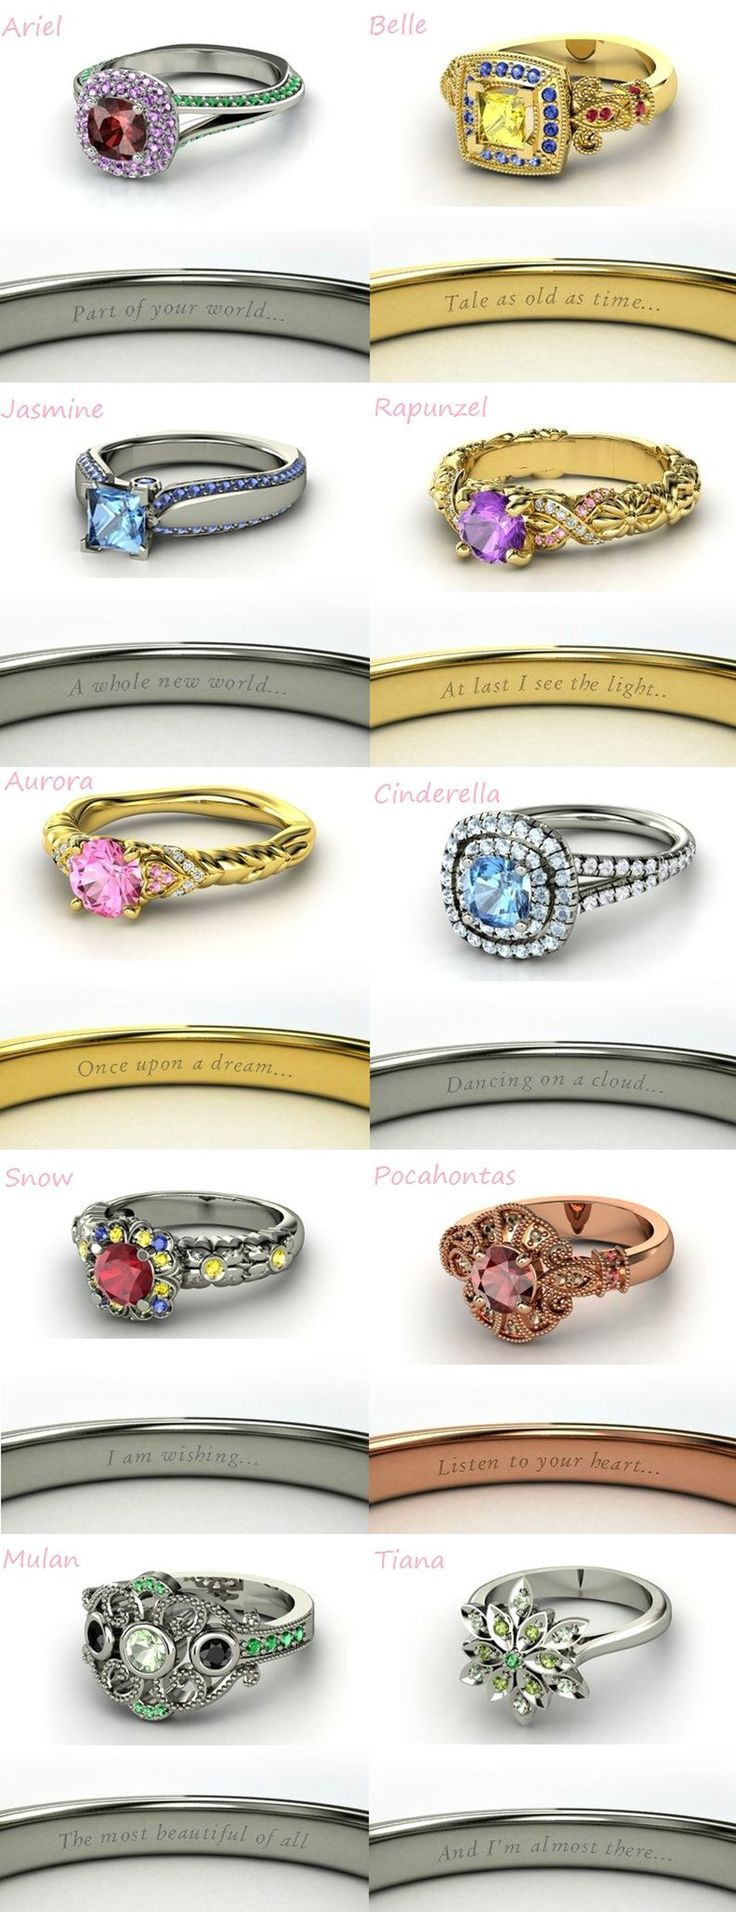 I Love Mulan And Cinderellas Ring Disney Inspired Rings Want Tale Old As Time On My Engagement Or Wedding So Romantic